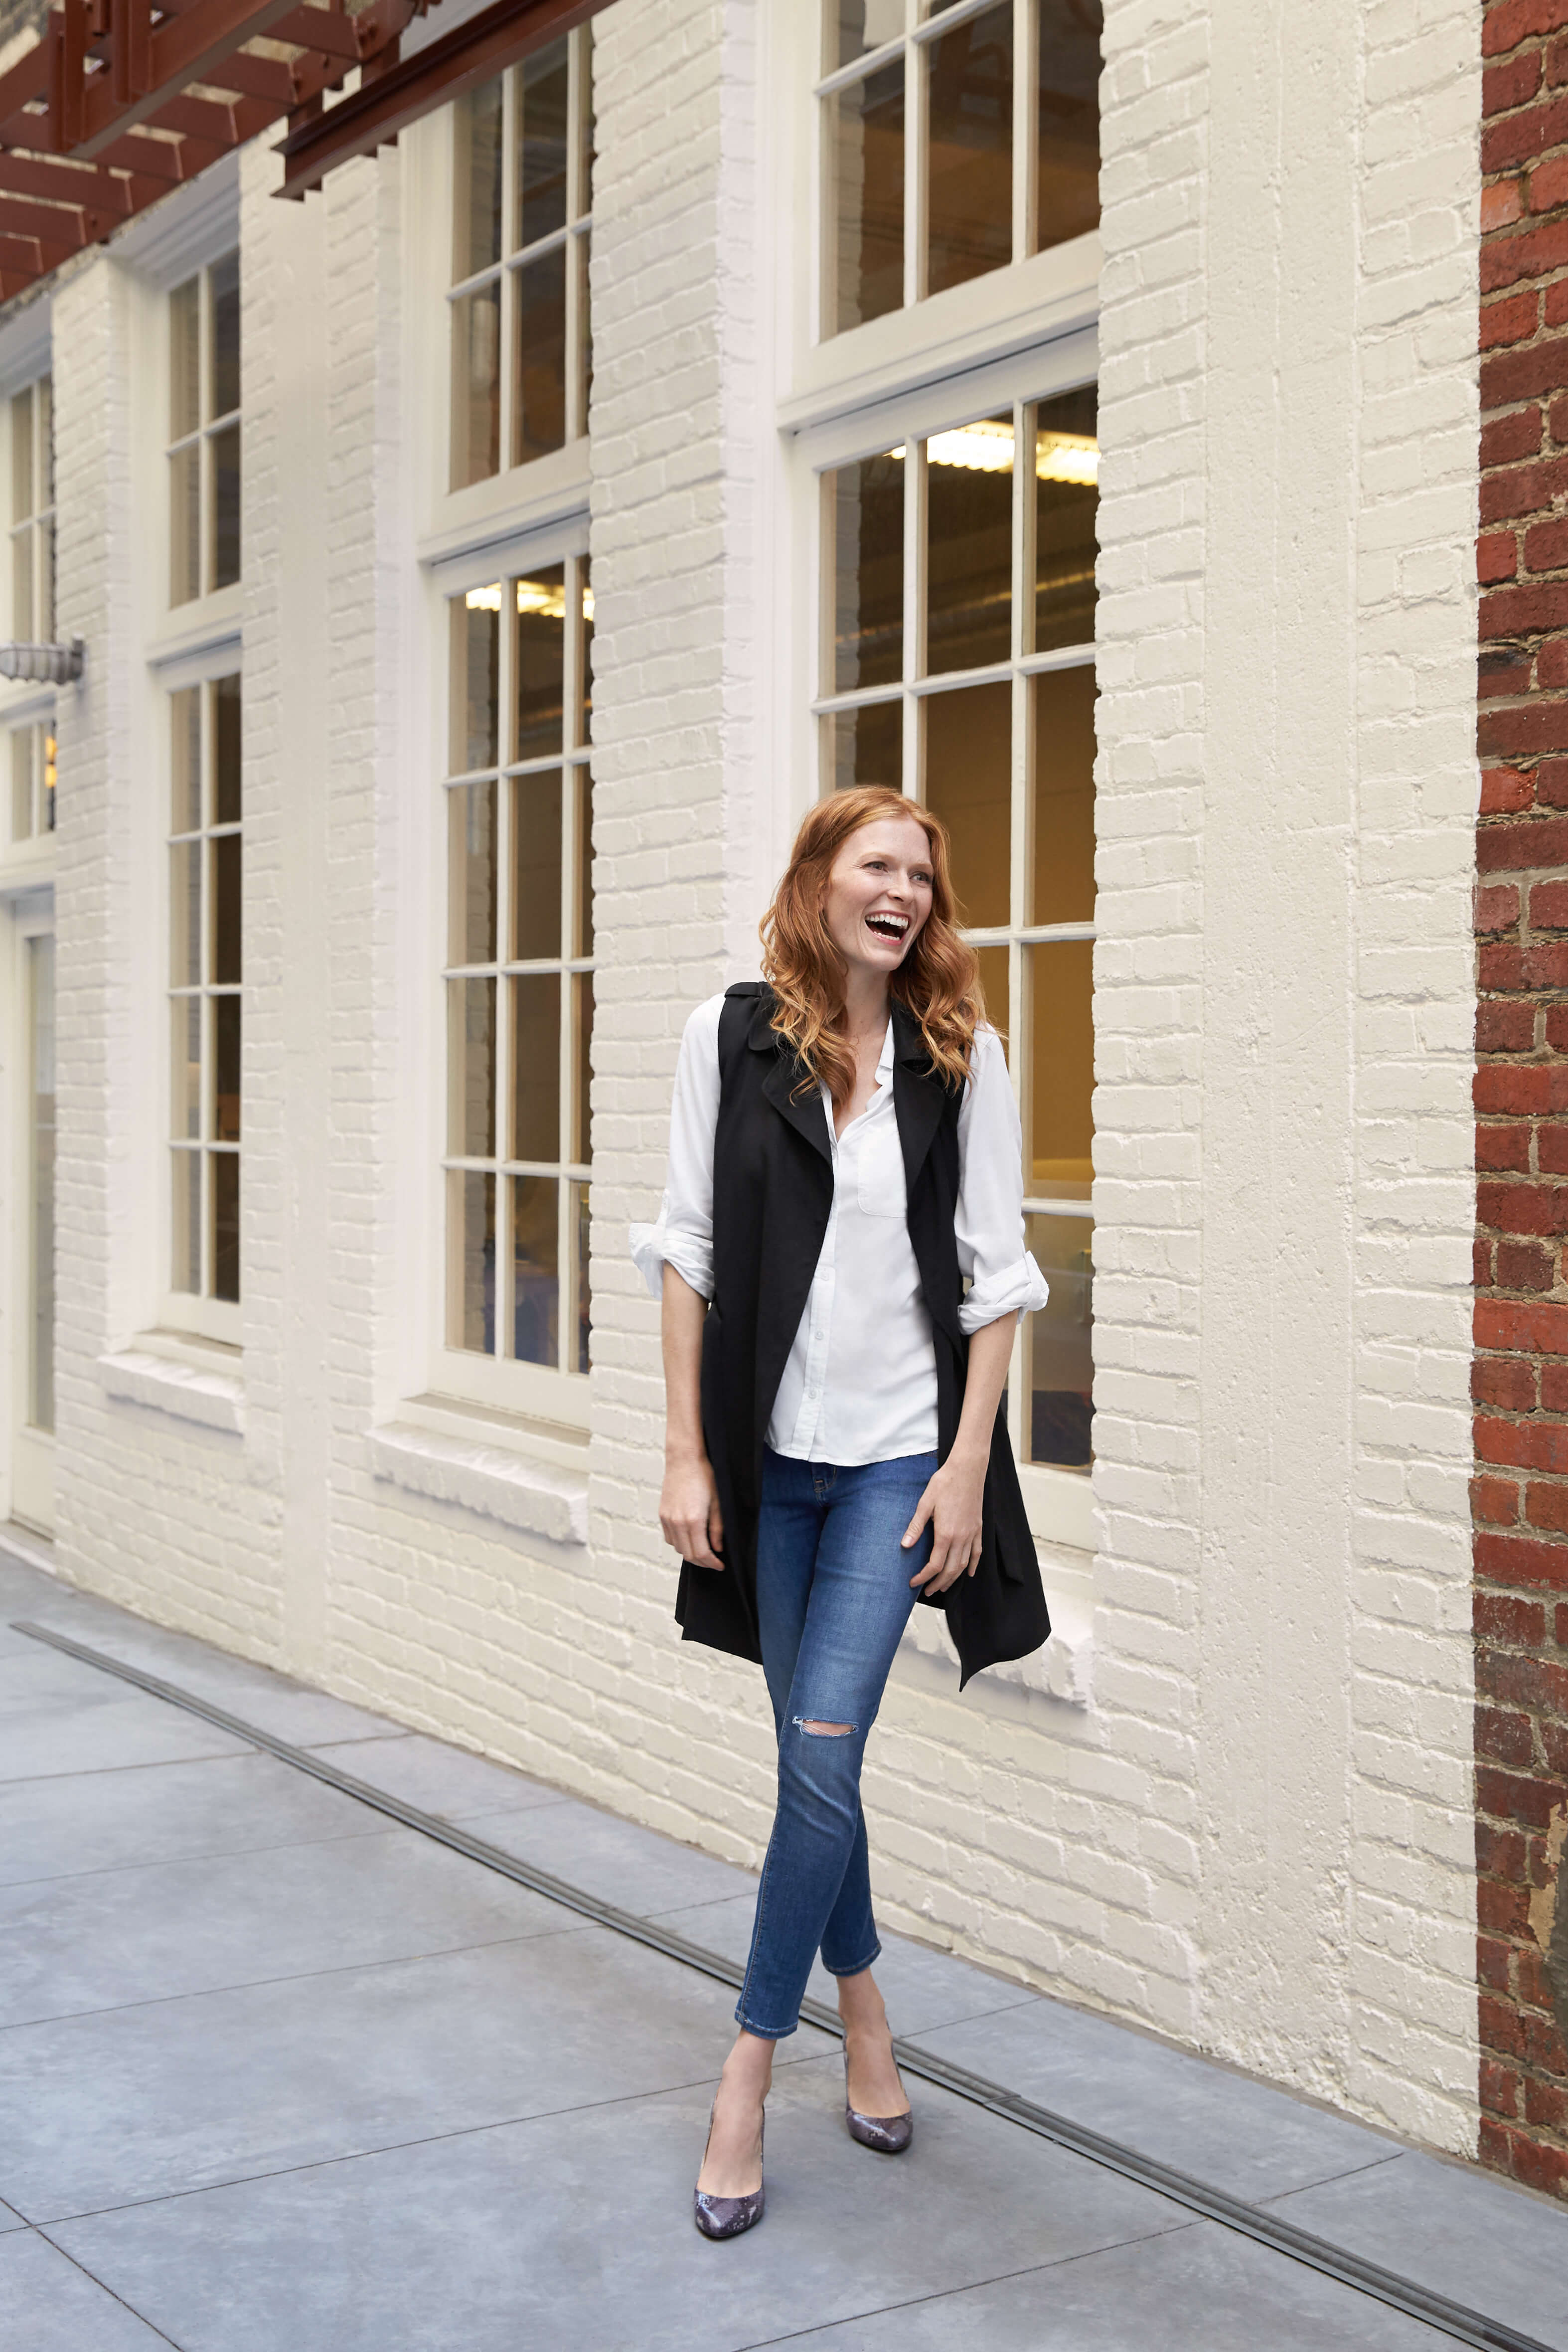 How to Wear Skinny Jeans as a base for new styles